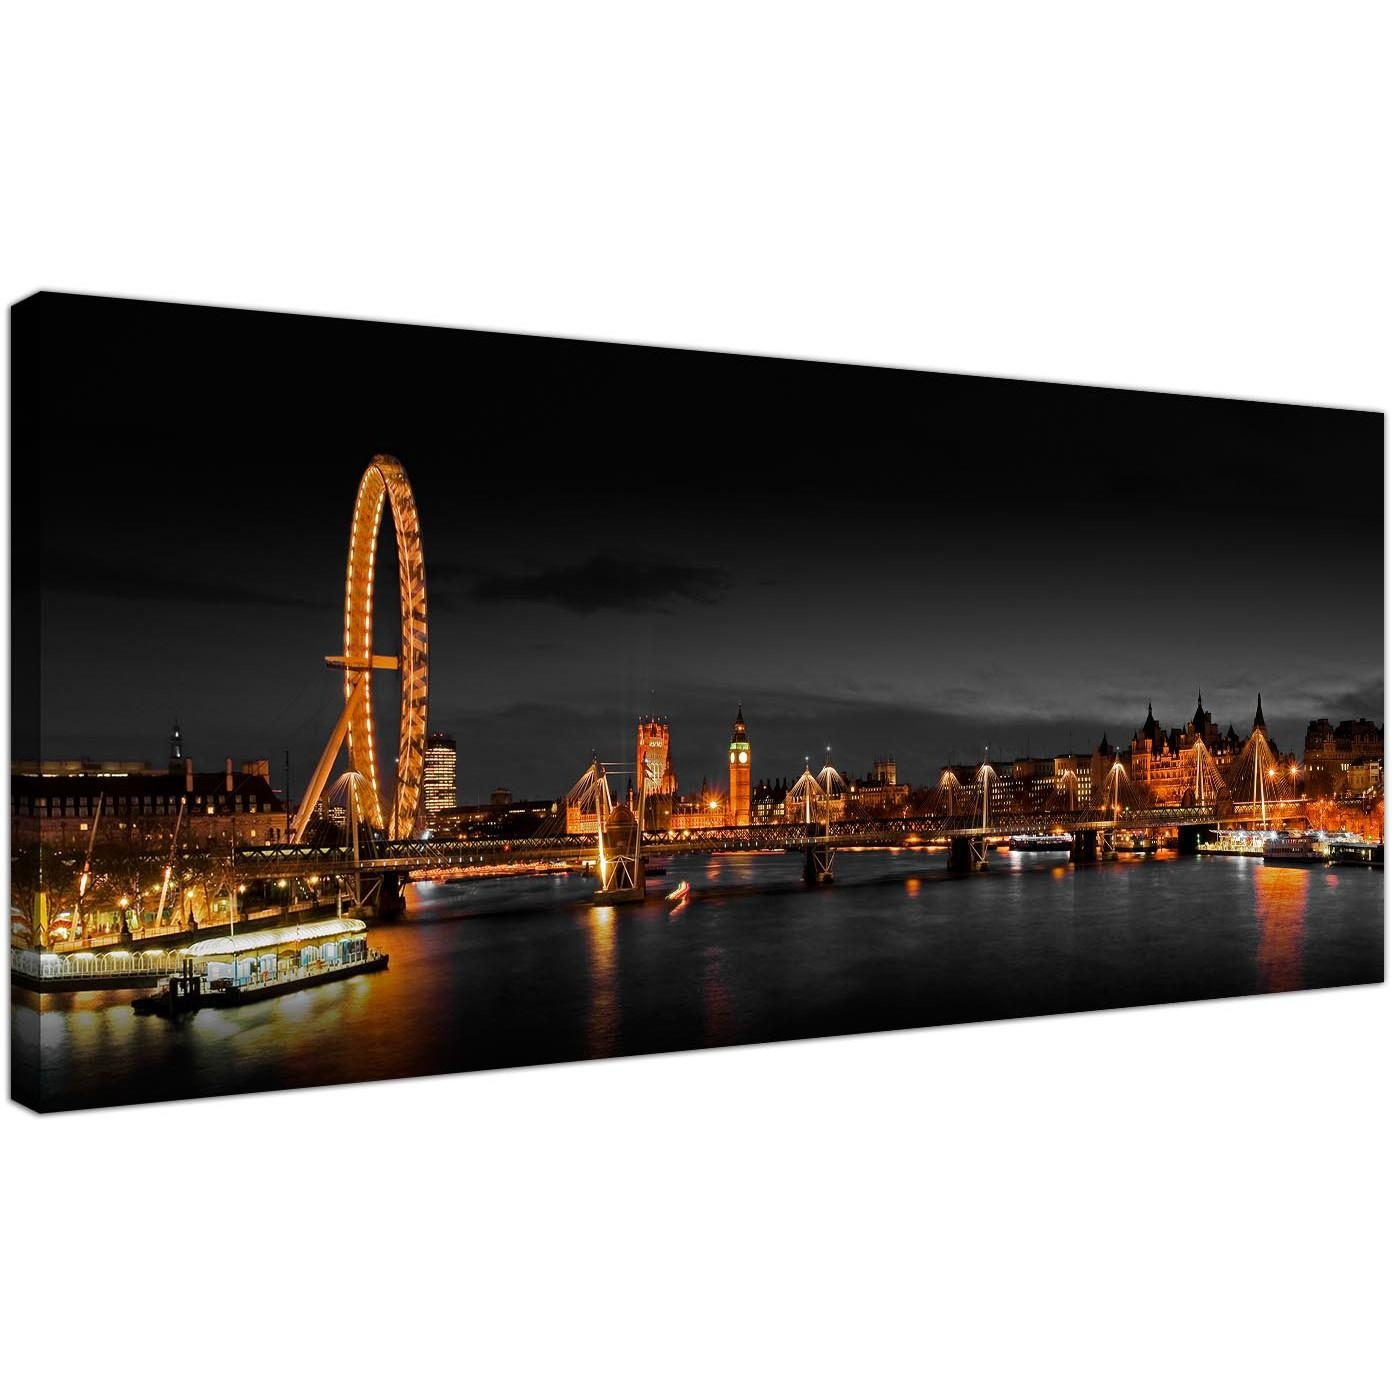 Panoramic Canvas Wall Art Of London Eye At Night For Your Living Room Pertaining To Cityscape Canvas Wall Art (Image 17 of 20)